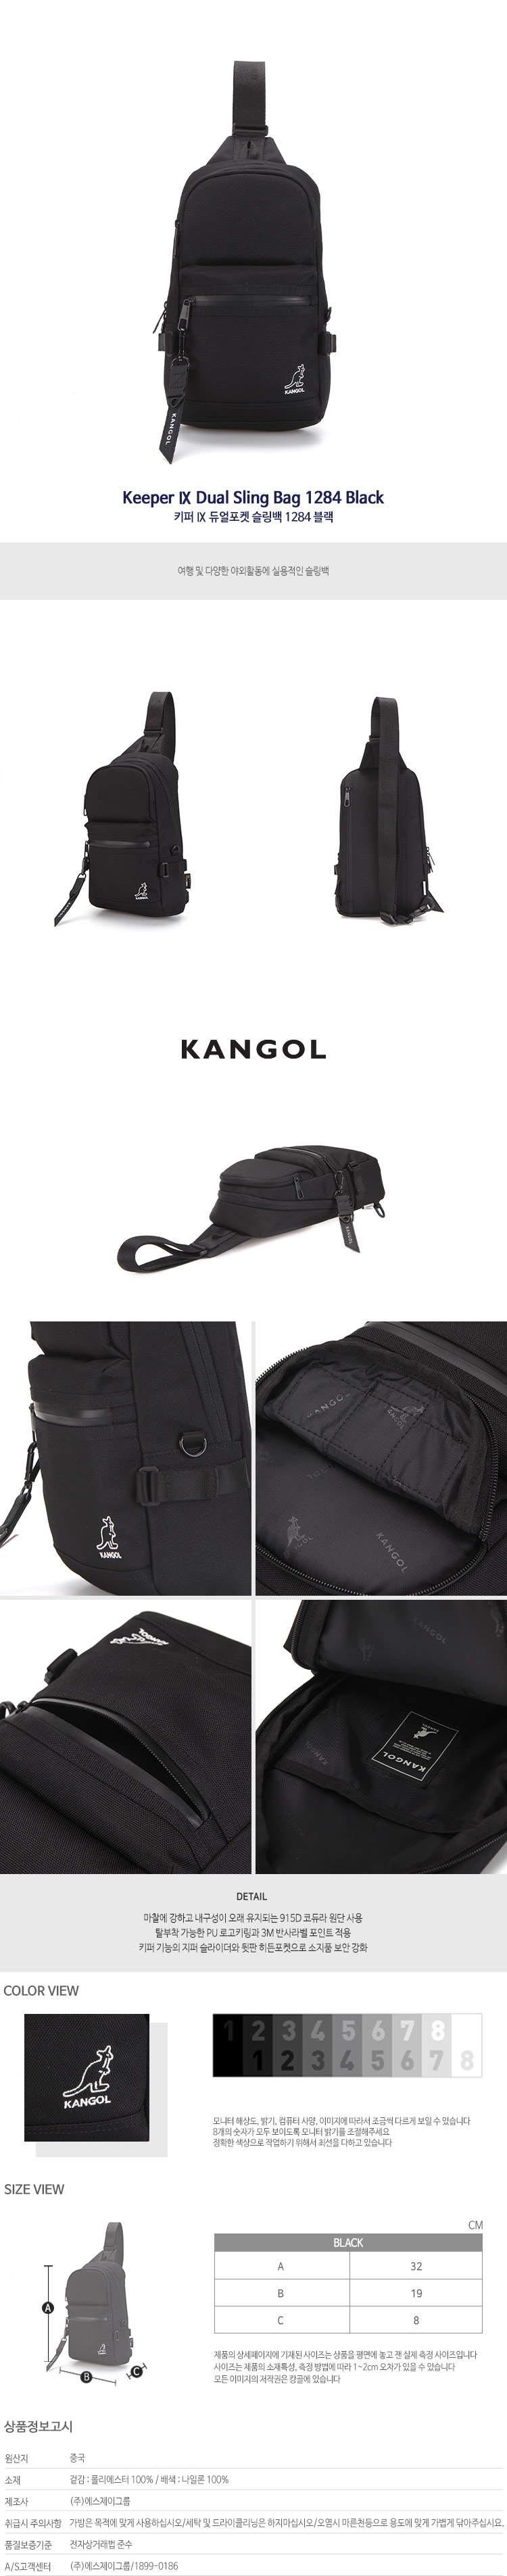 Keeper Ⅸ Dual pocket Sling bag 1284 BLACK